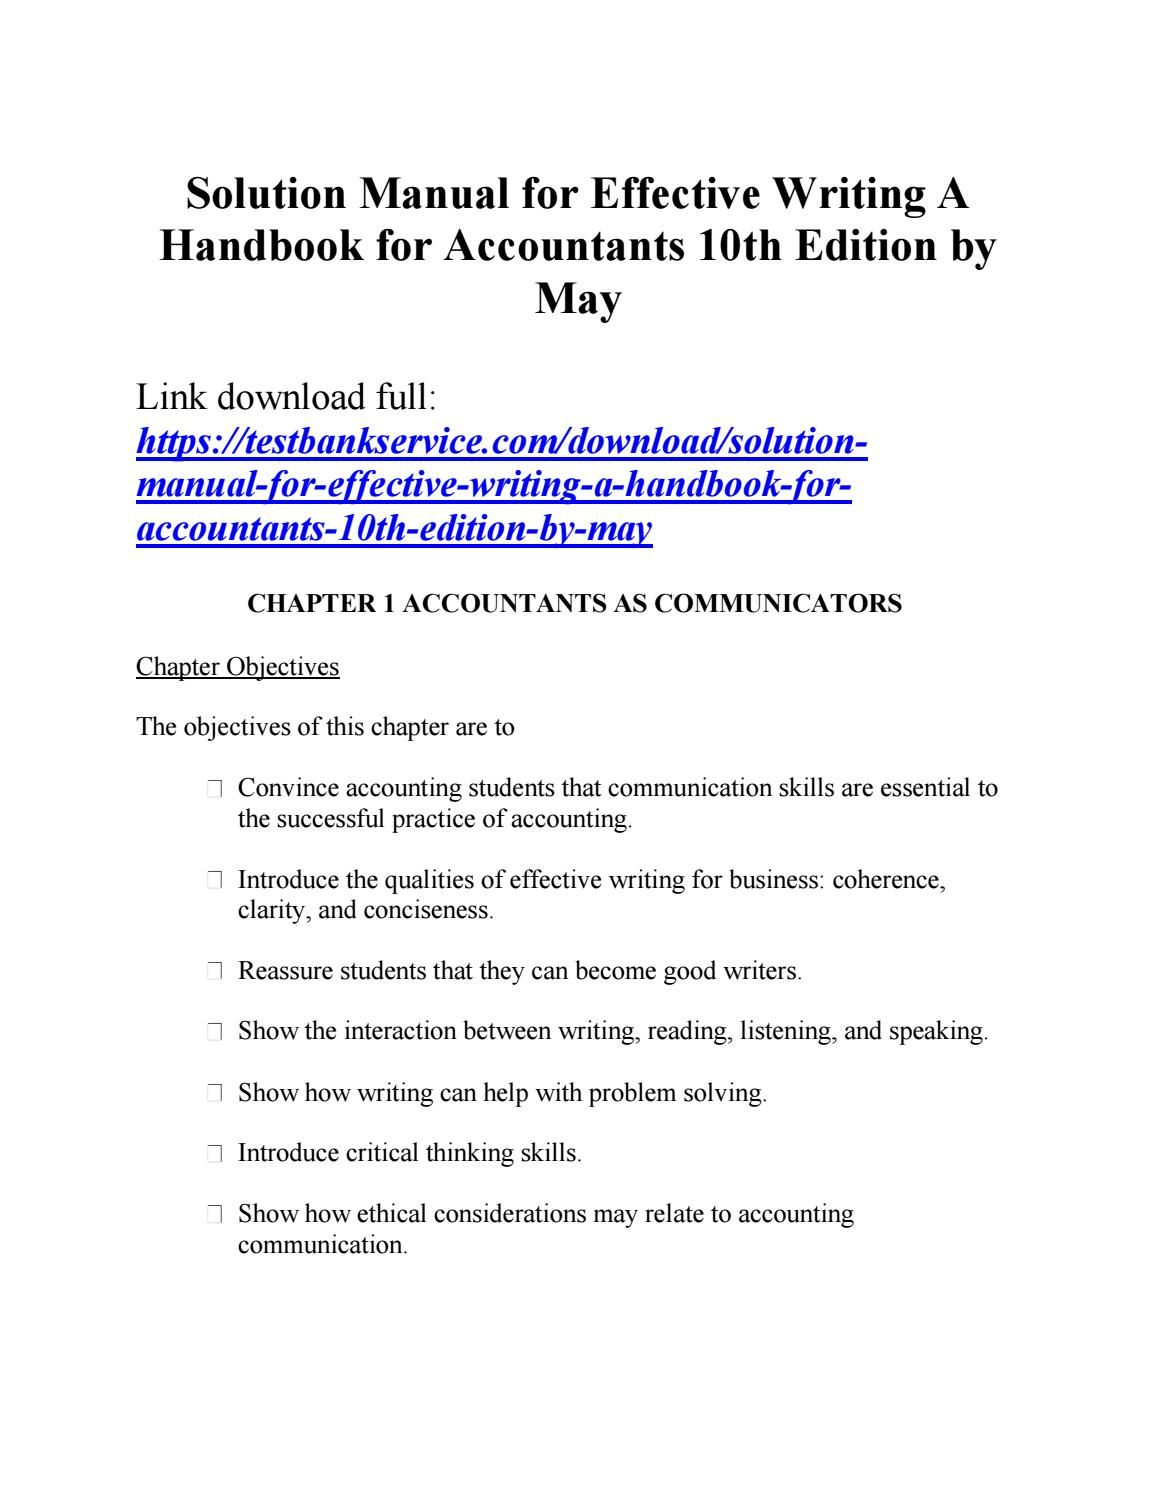 Solution Manual For Effective Writing A Handbook For Accountants 10th Edition By May Solutions Accounting Student Manual